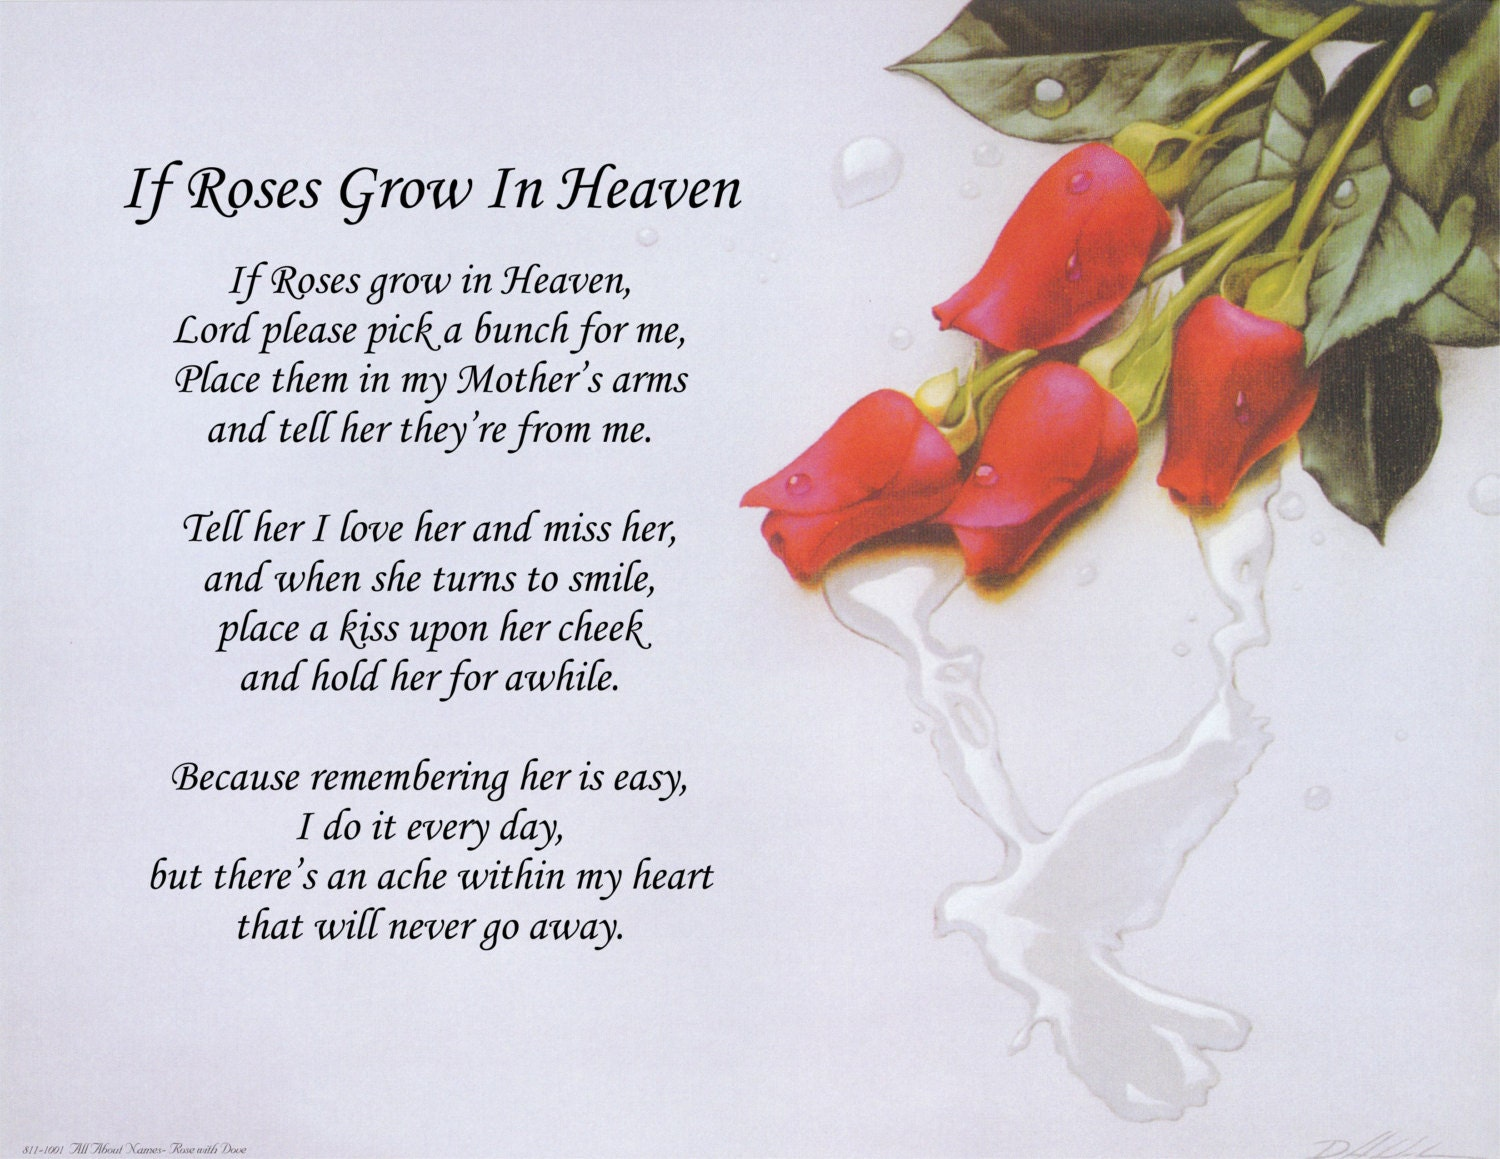 happy valentines day dad poems - Poem If Roses Grow In Heaven